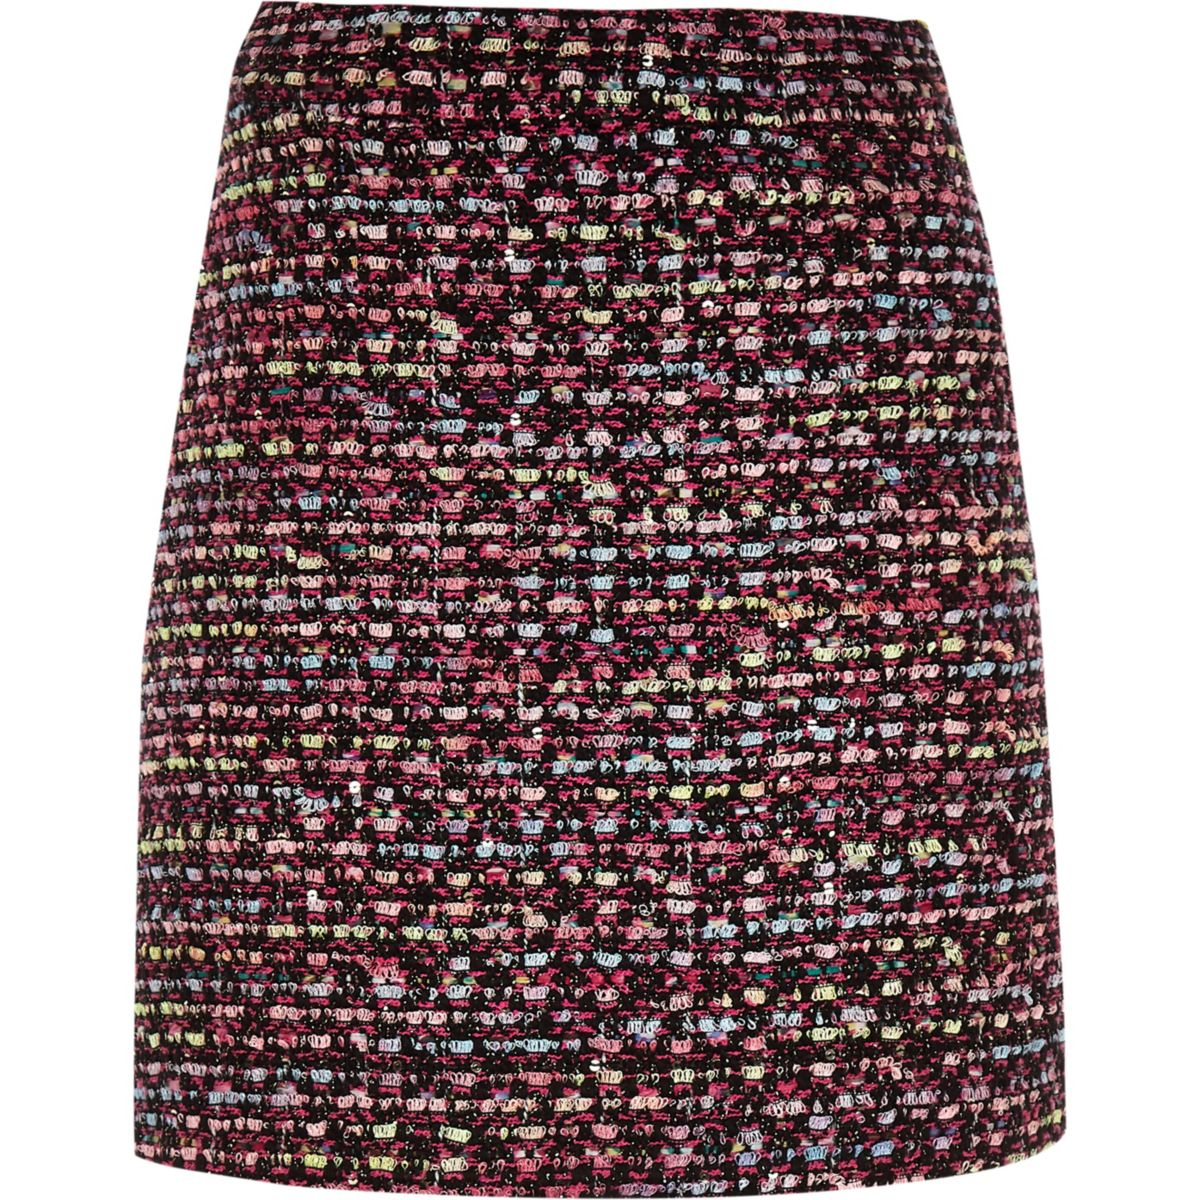 Girls pink and black boucle skirt